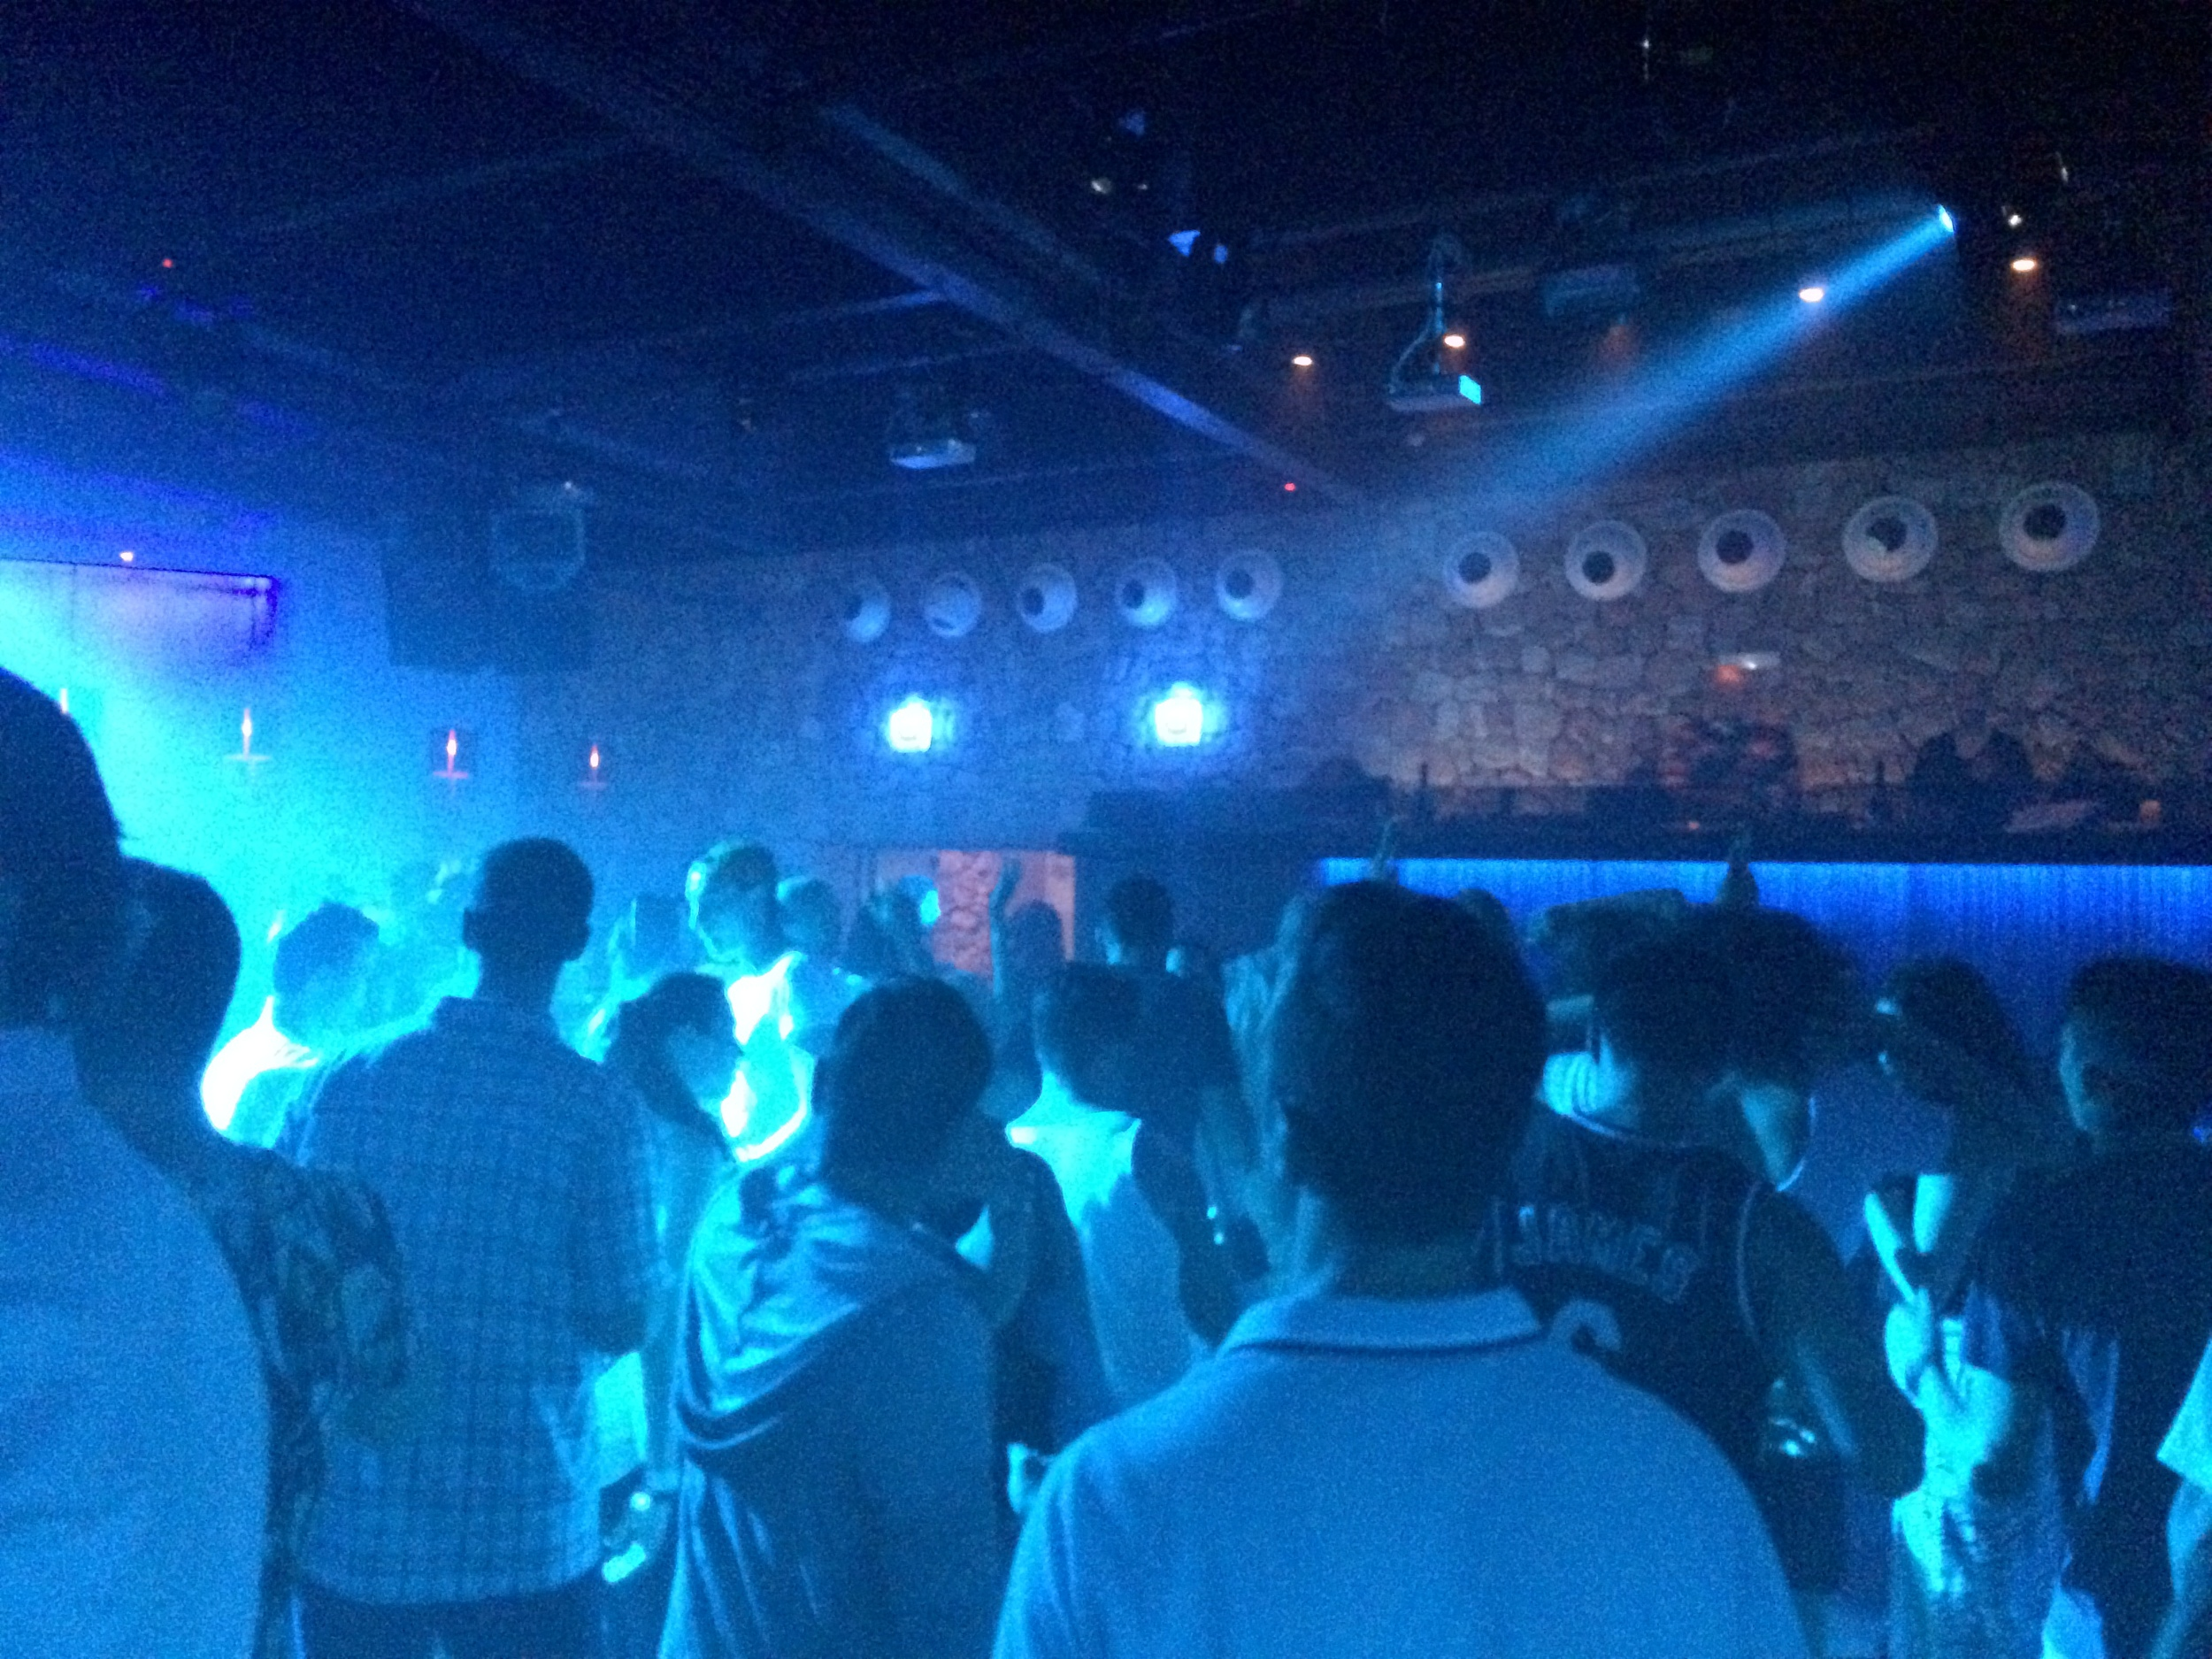 The main dance floor with the DJ booth.